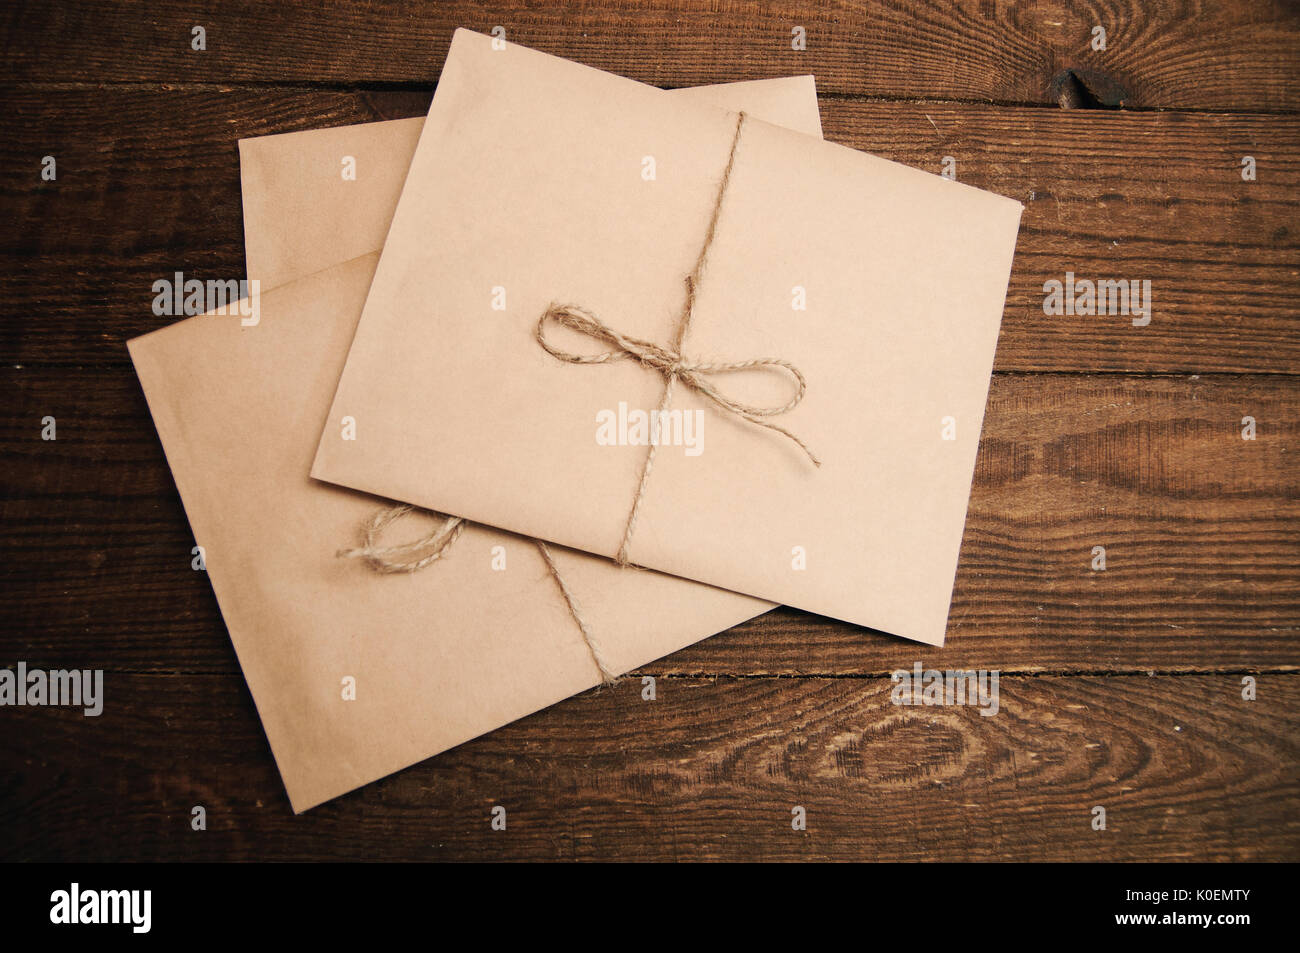 Correspondence from kraft paper on a wooden background tied with a rope - Stock Image